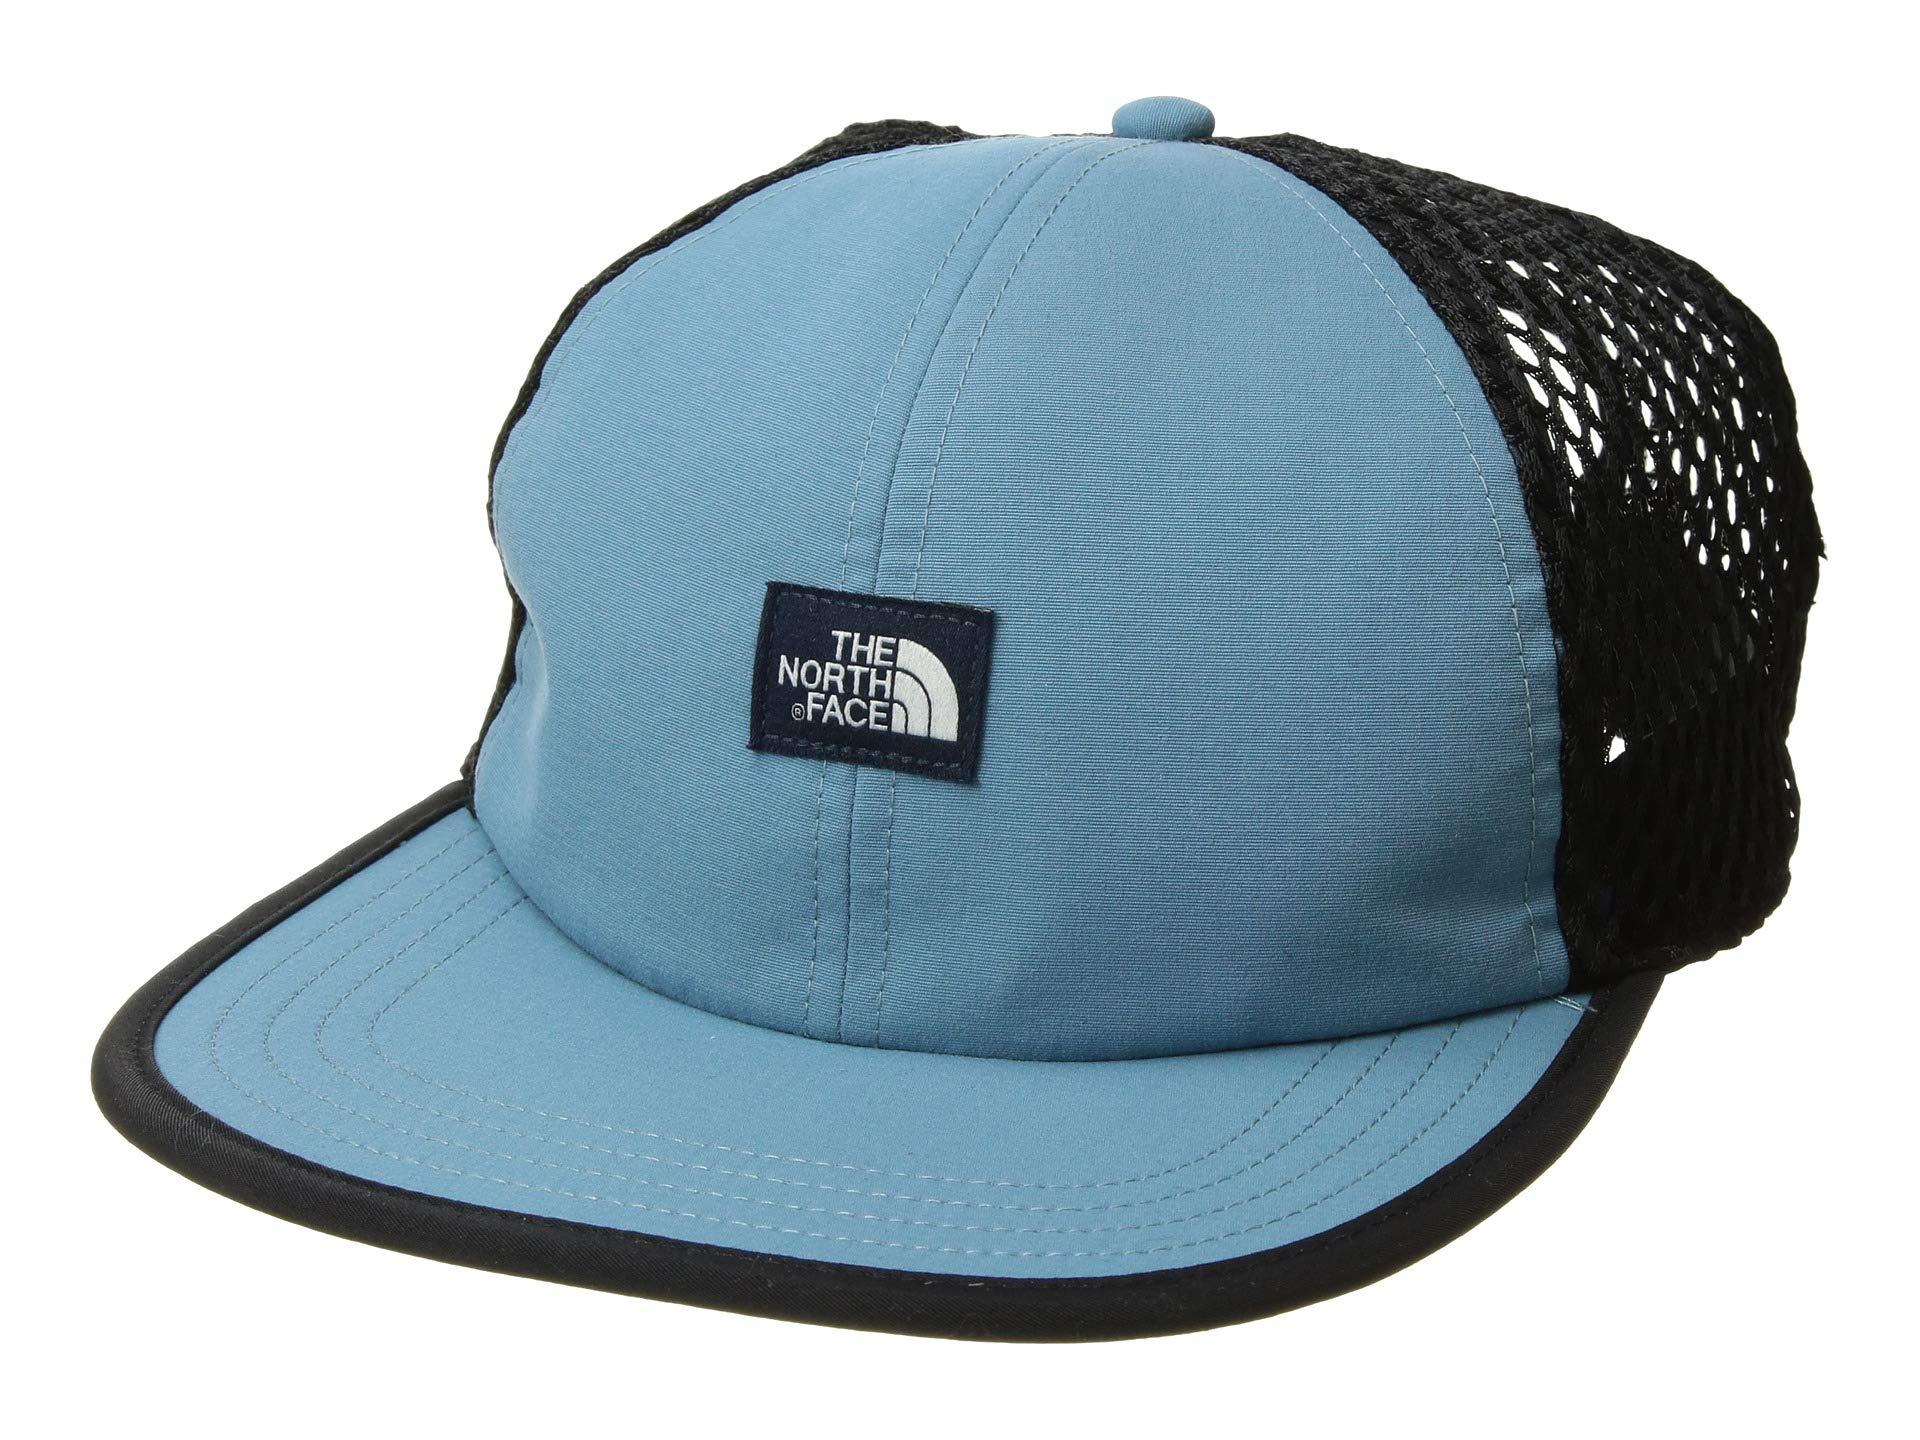 9974fd4eefbb3 The North Face Class V Trucker Hat (tnf Black) Caps in Blue for Men ...